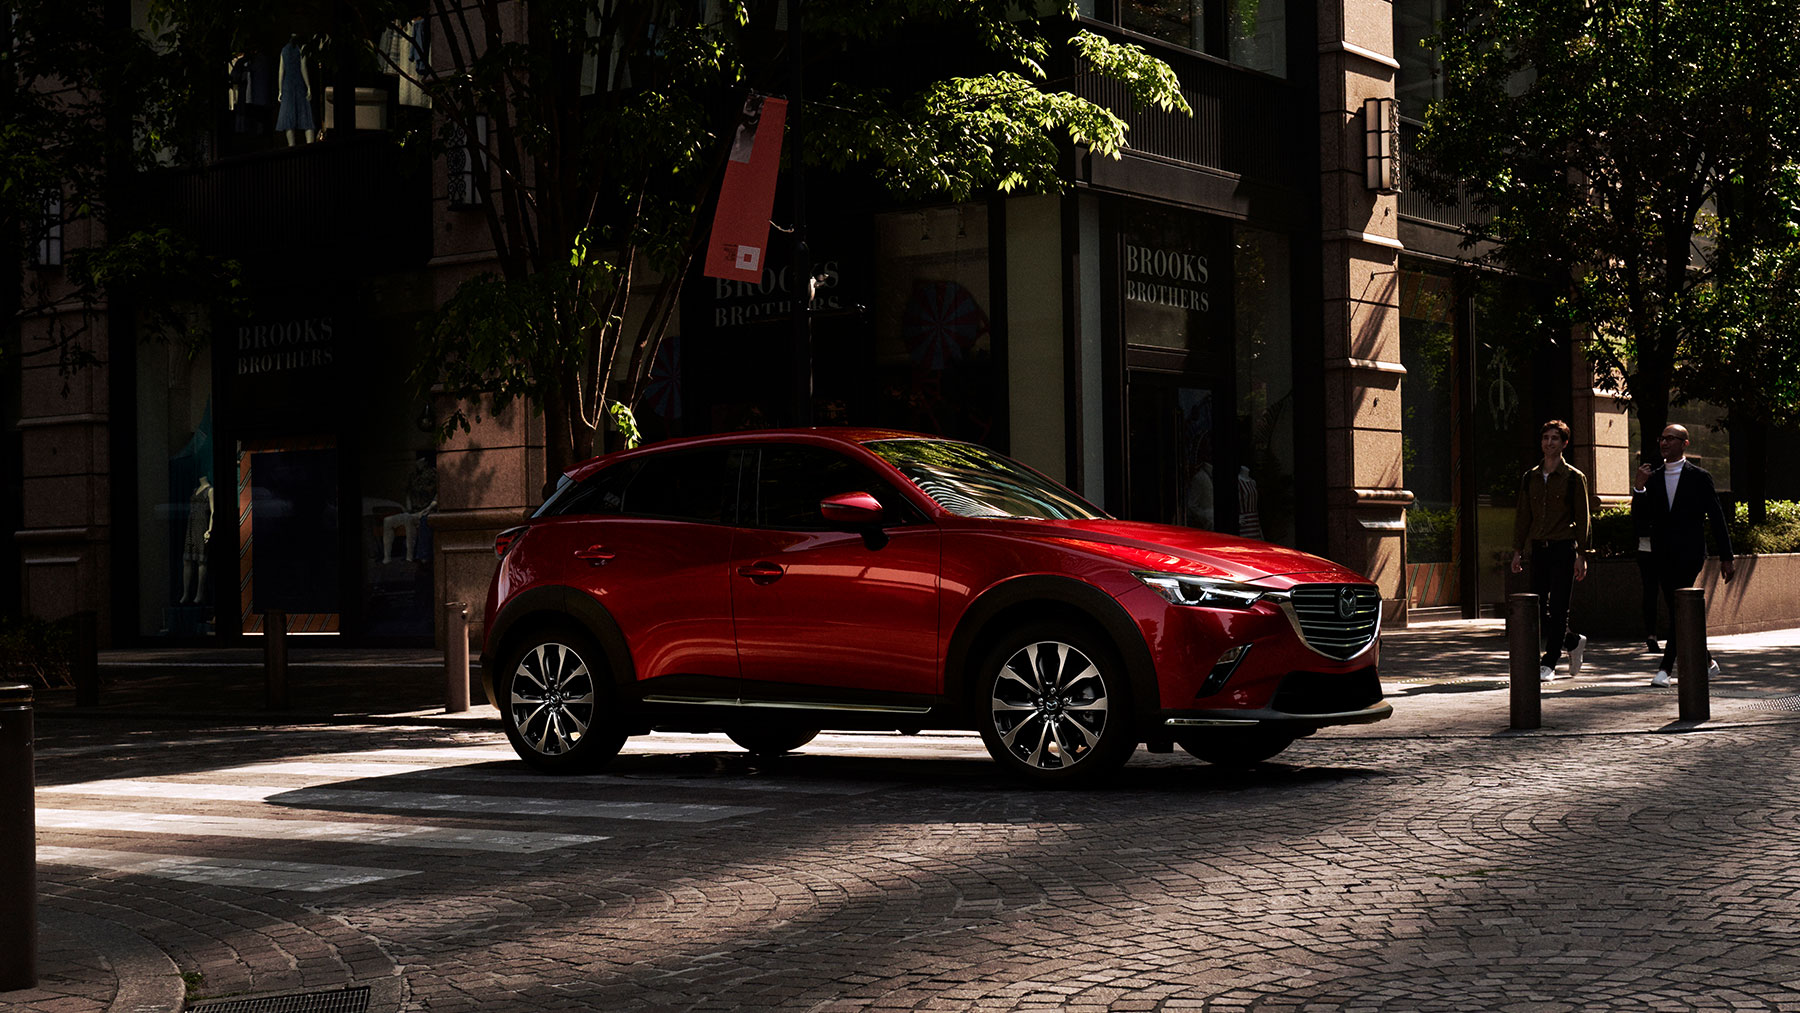 a red 2020 Mazda CX-3 parked in the city